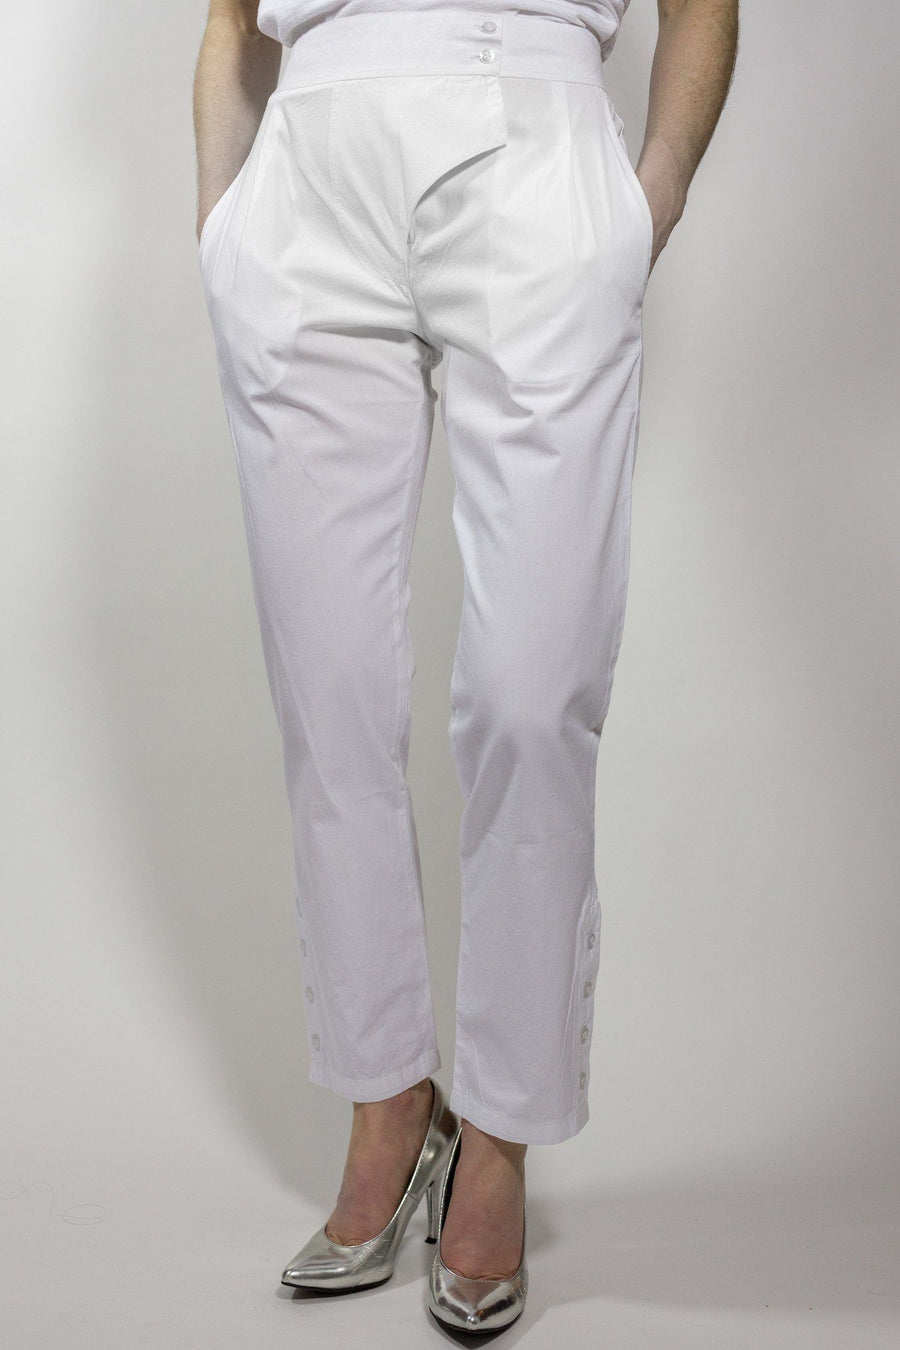 Kiku Pants - White